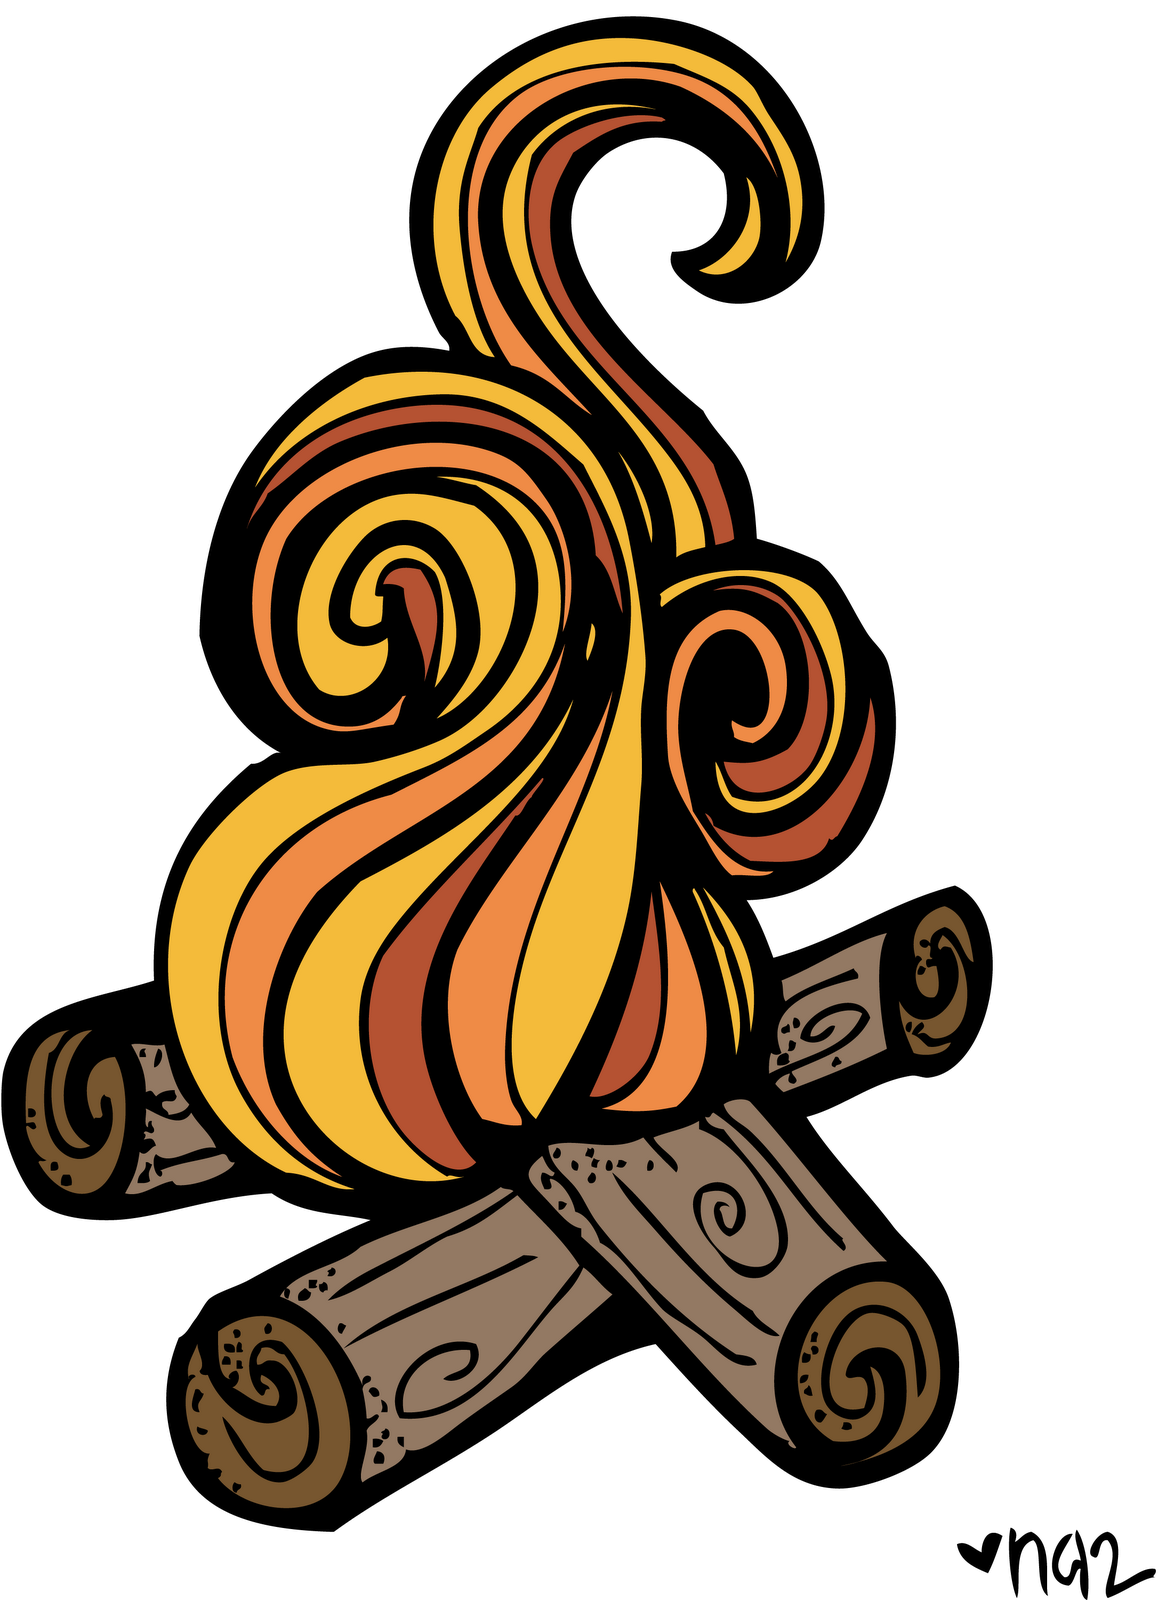 Campfire clipart. Free s mores download